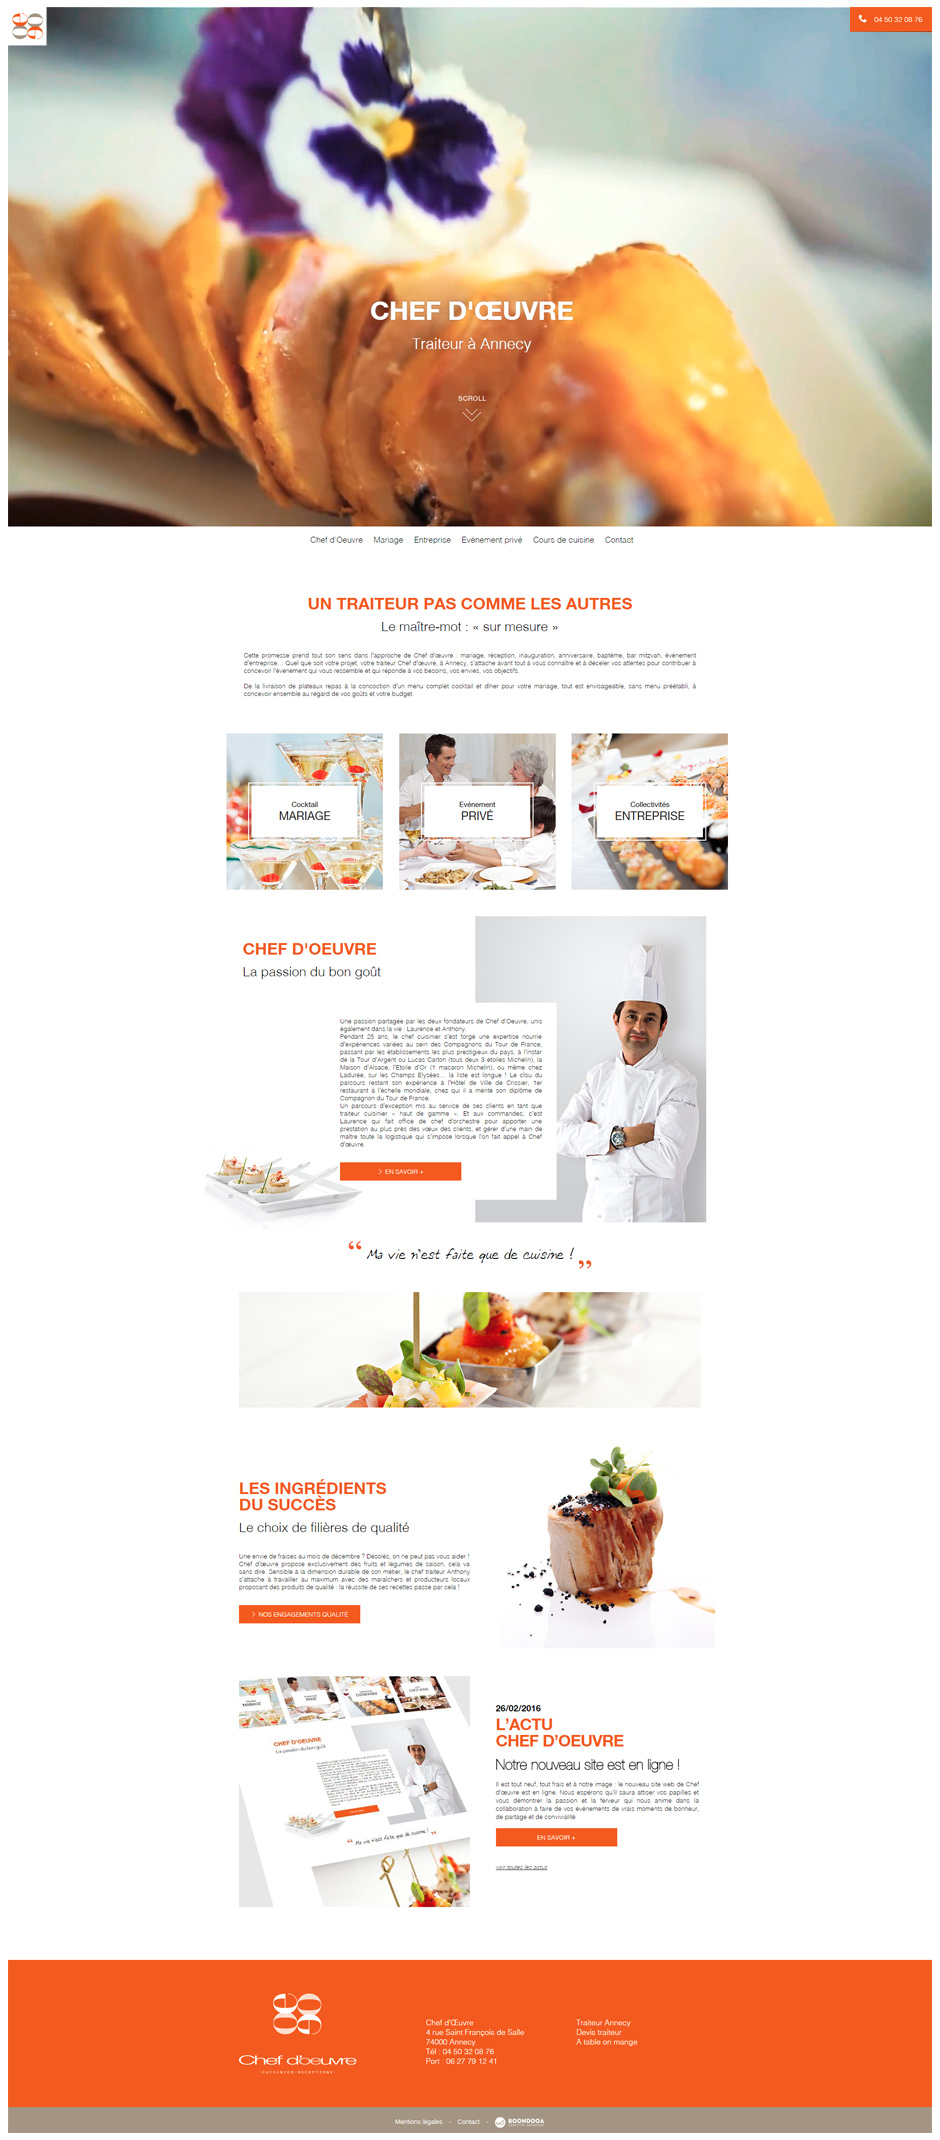 Cr ation conception site internet annecy boondooa - Chef d oeuvre ...